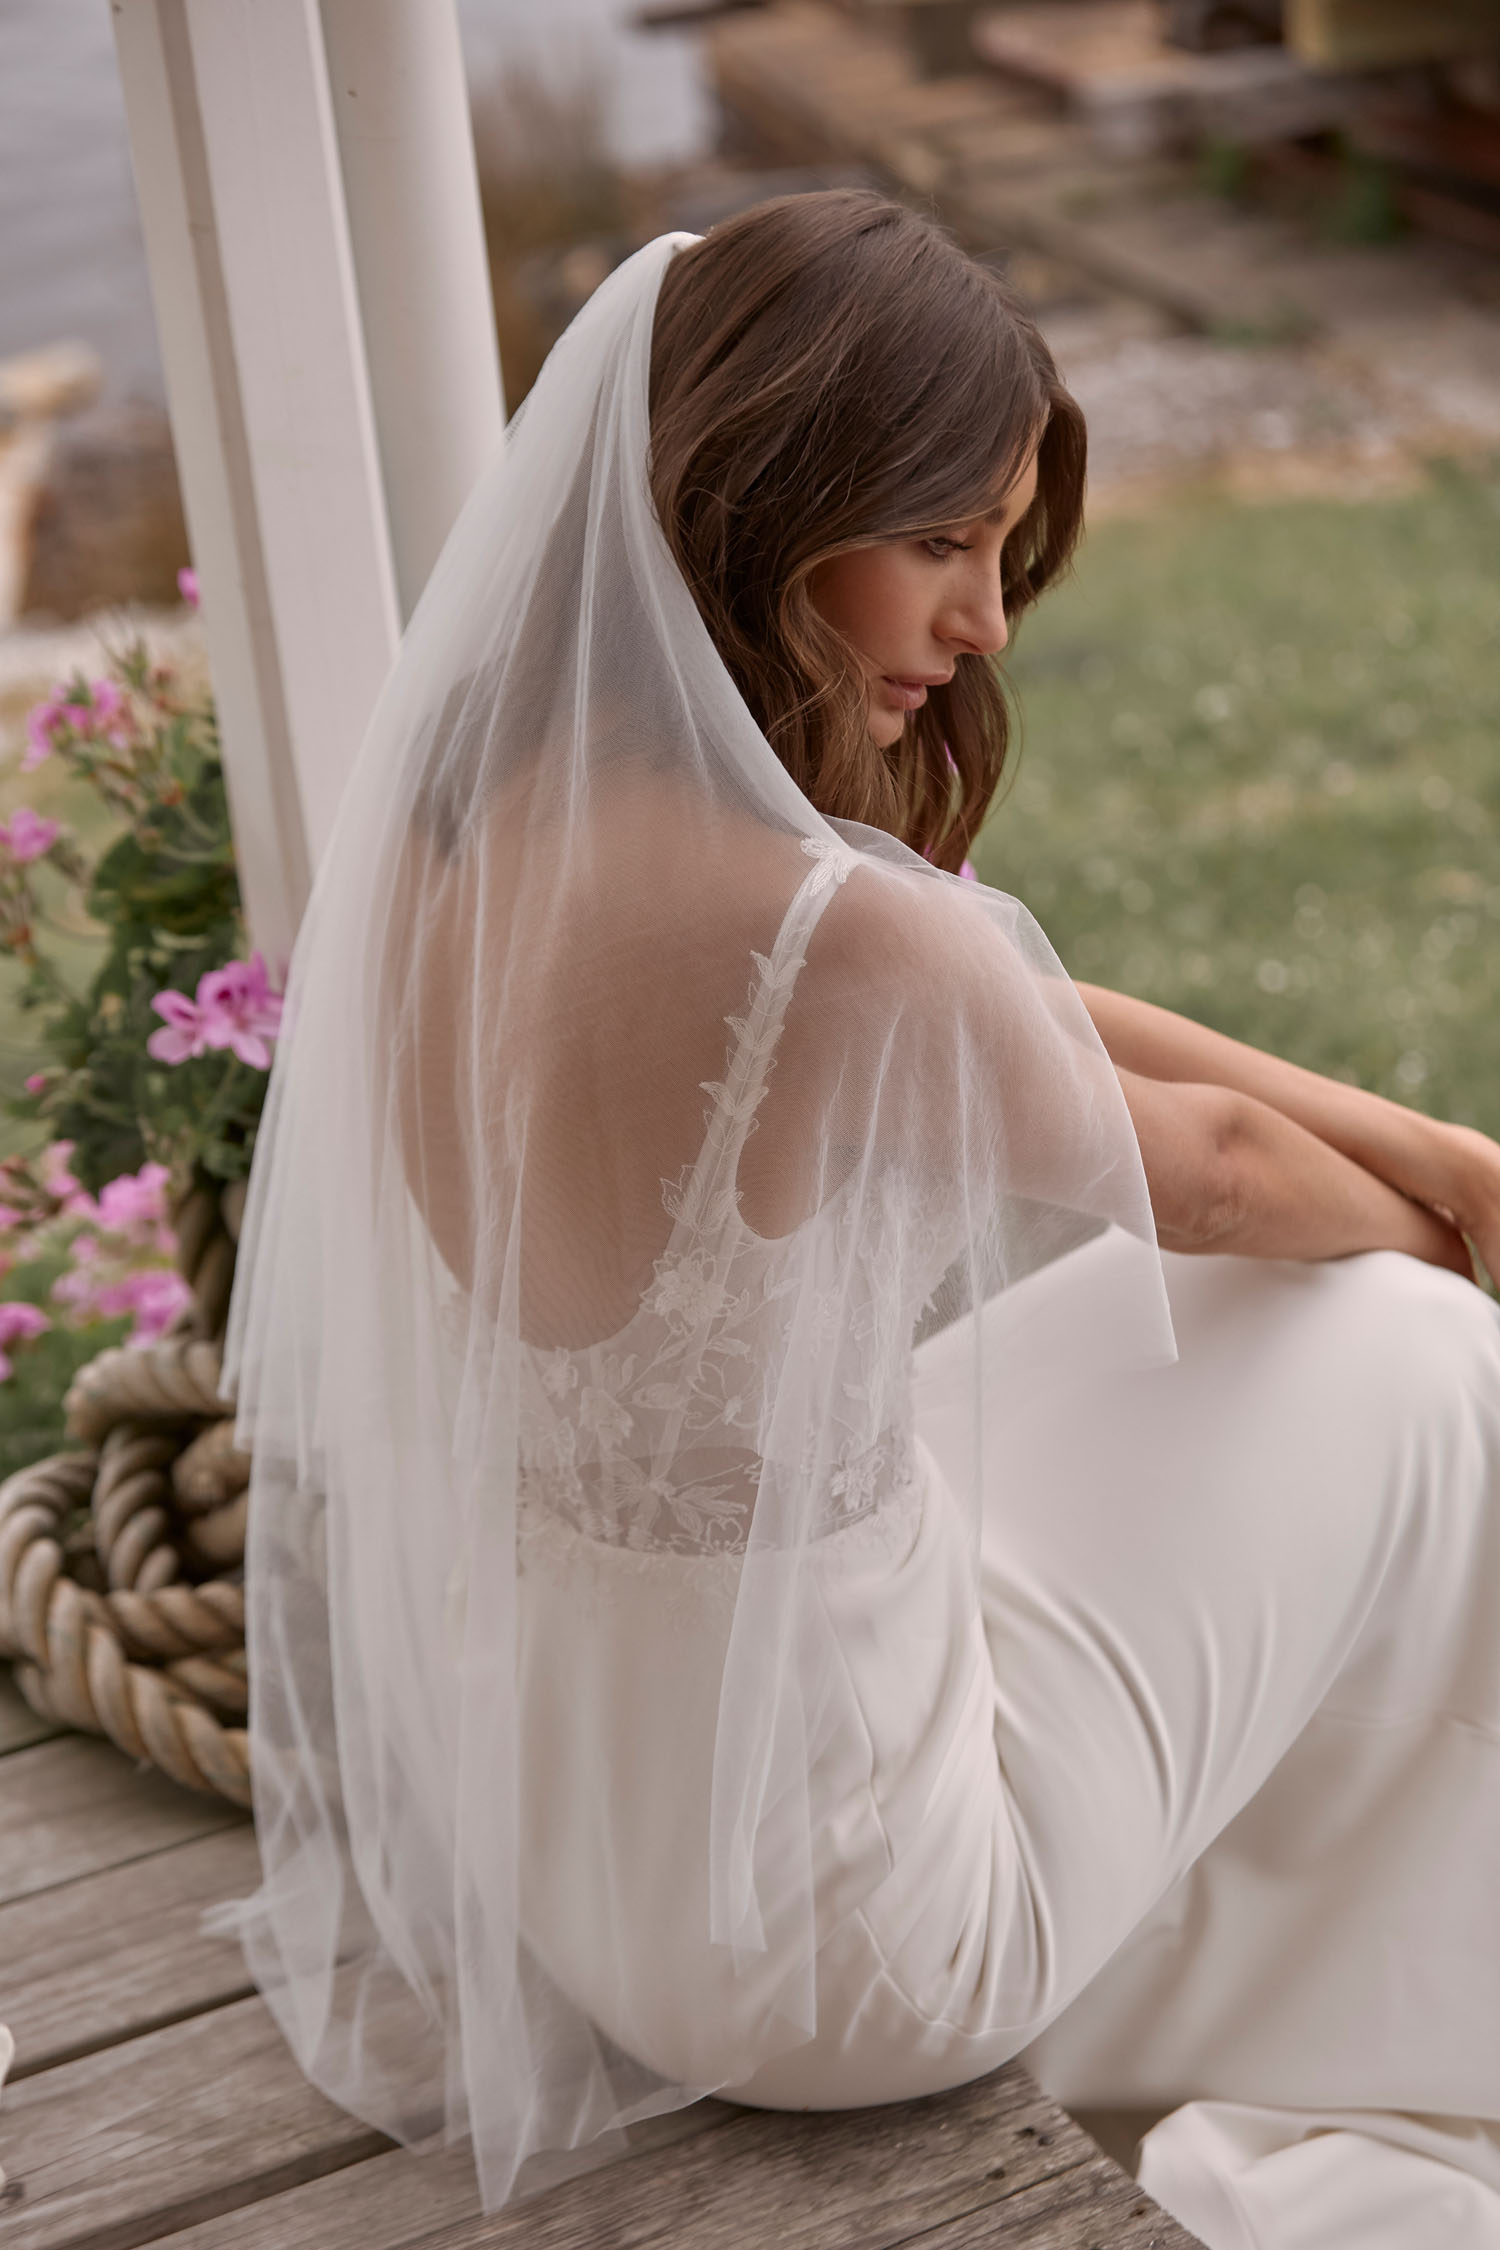 CARSON-ML21005-FULL-LENGTH-FITTED-CREPE-GOWN-LACE-BODICE-STRAPS-AND-SCOOP-NECKLINE-SCOOP-BACK-ZIPPER-CLOSURE-WEDDING-DRESS-AND-VEIL-MADI-LANE-BRIDAL-5